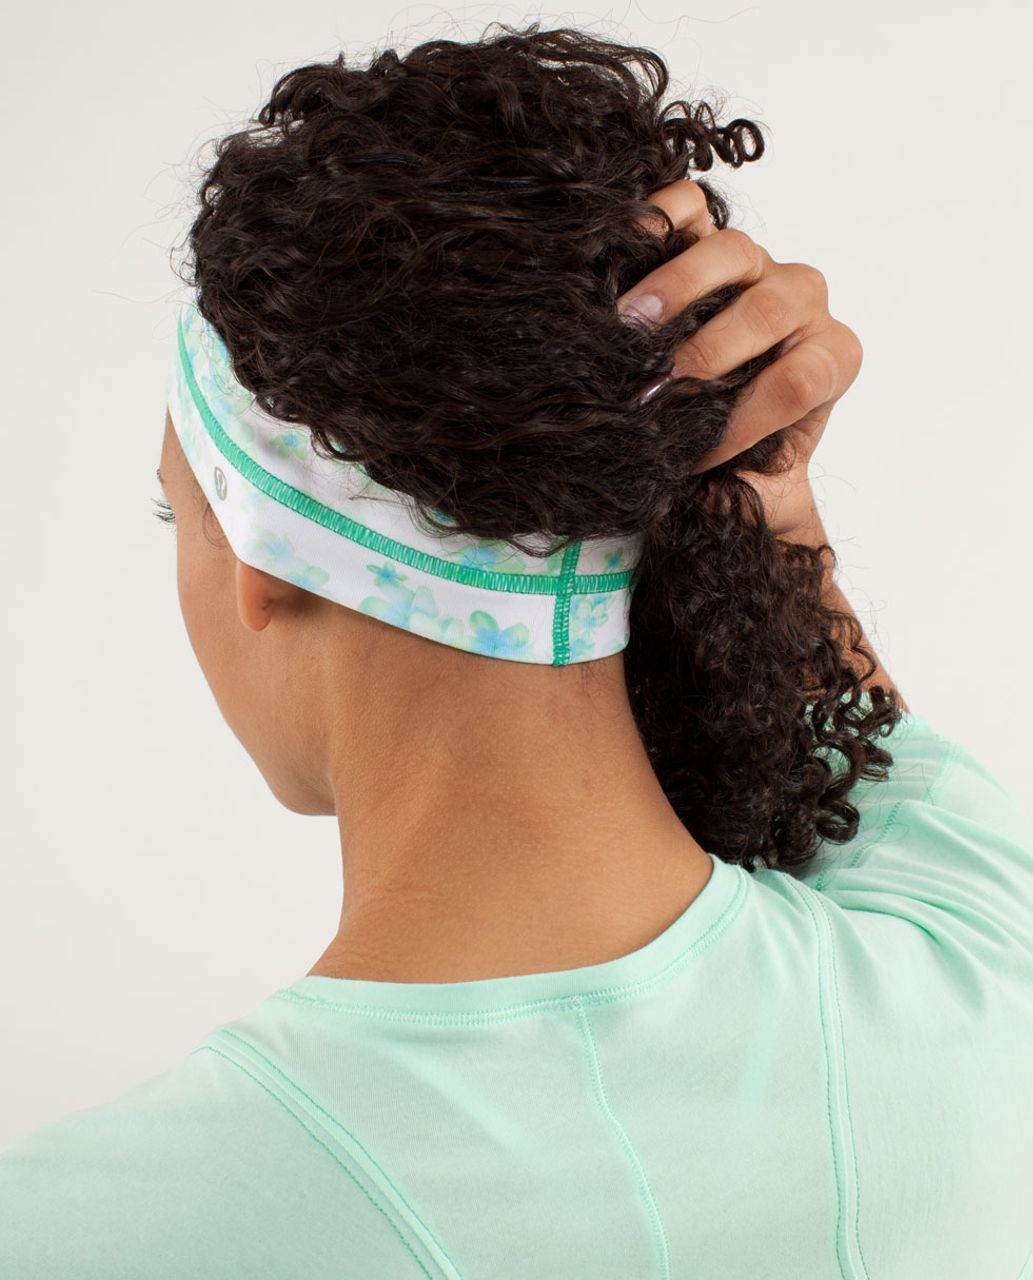 Lululemon Fly Away Tamer Headband - Frangipani Very Green